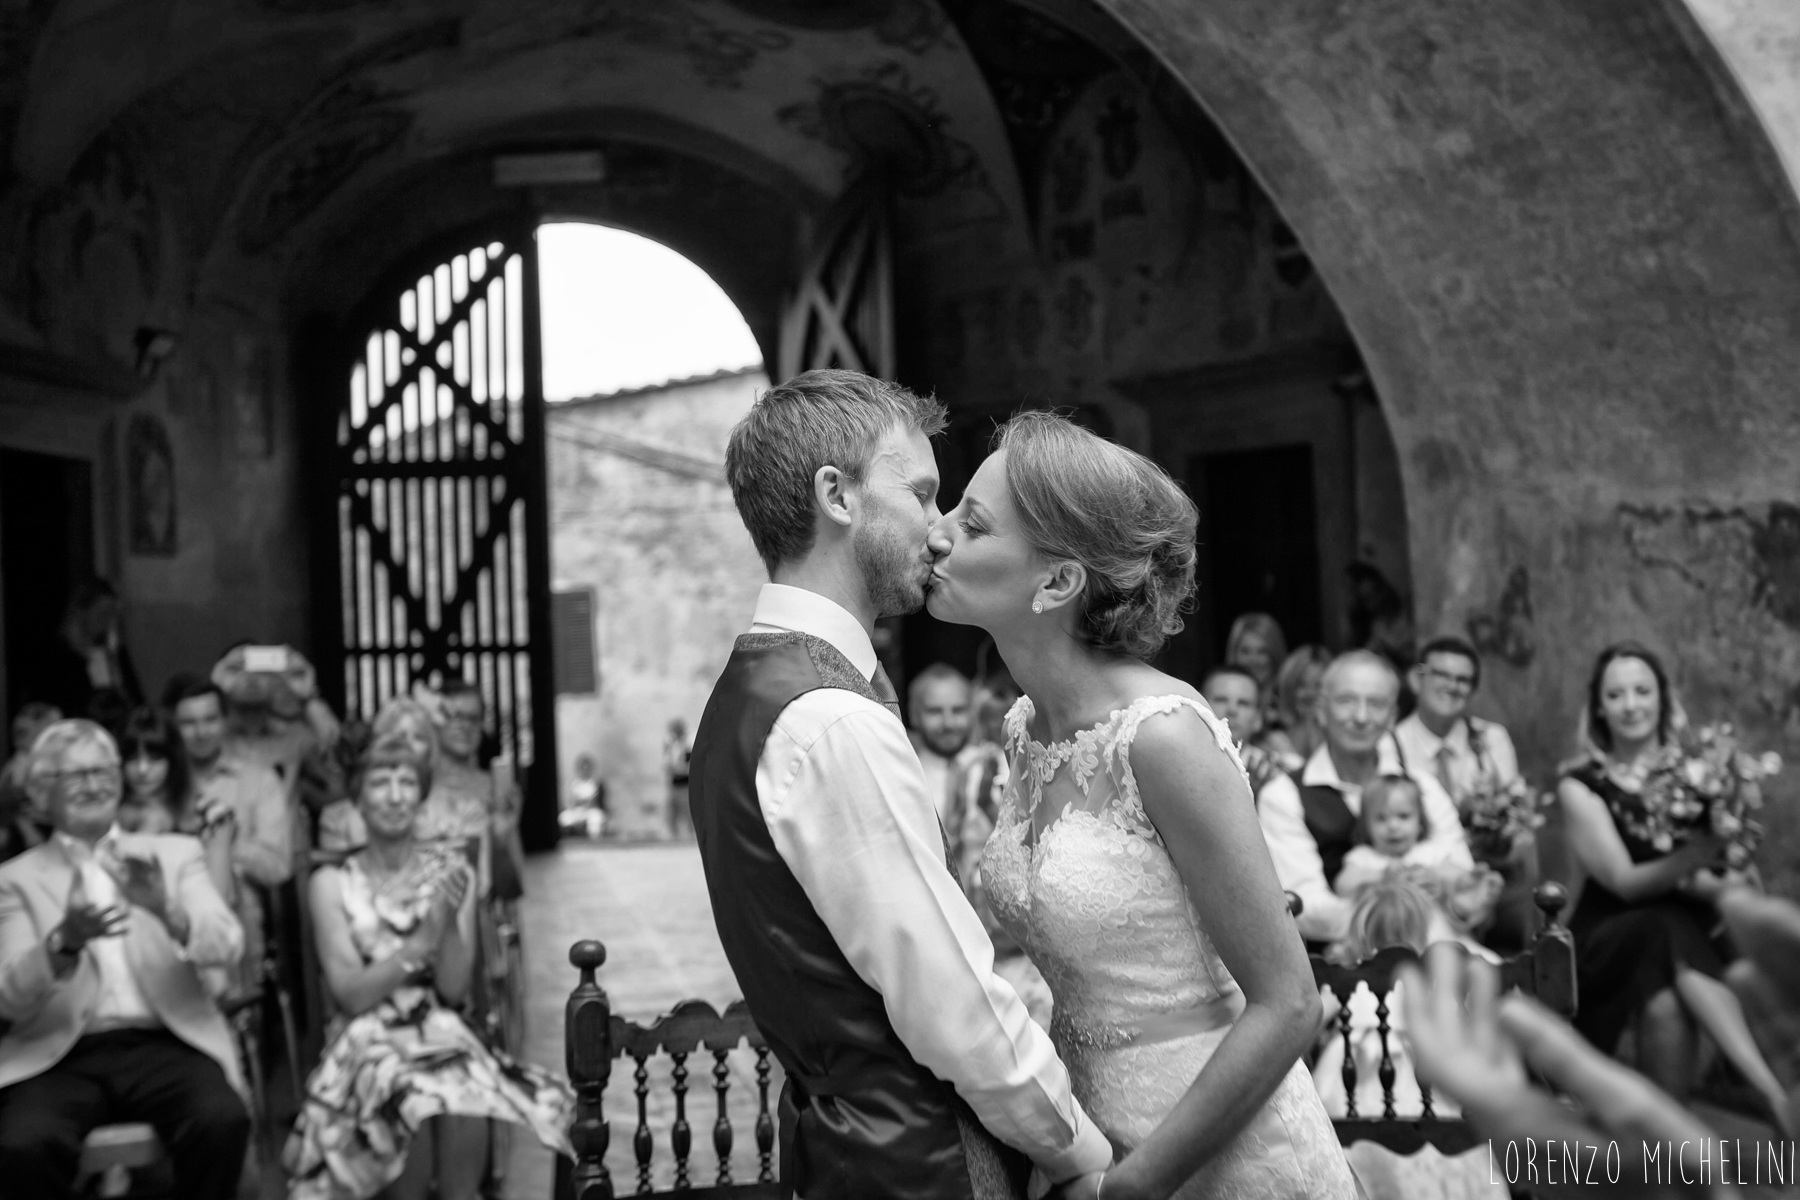 best-wedding-photographer-italy-fotografo-sposi-toscana-37